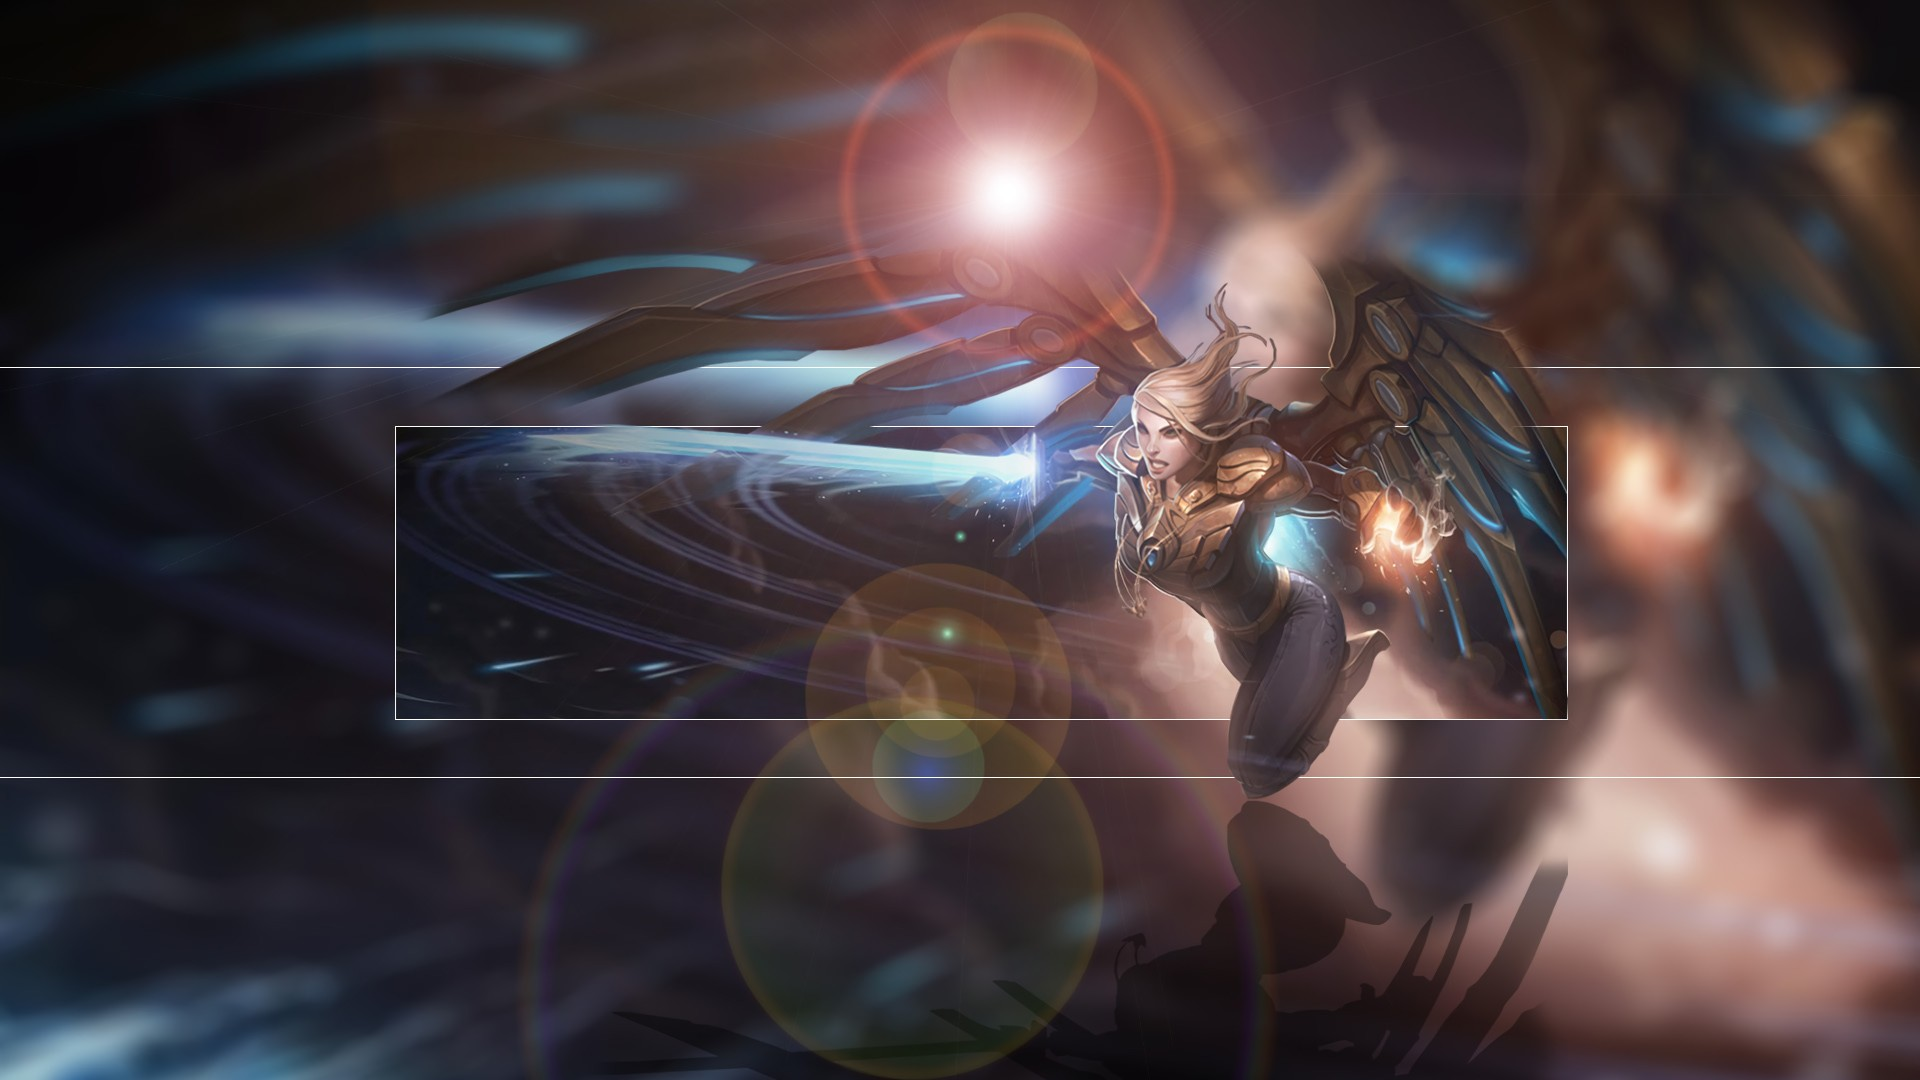 Aether Wing Kayle By Icehans Hd Wallpaper Fan Art Artwork - Aether Wing Kayle Splash Art , HD Wallpaper & Backgrounds